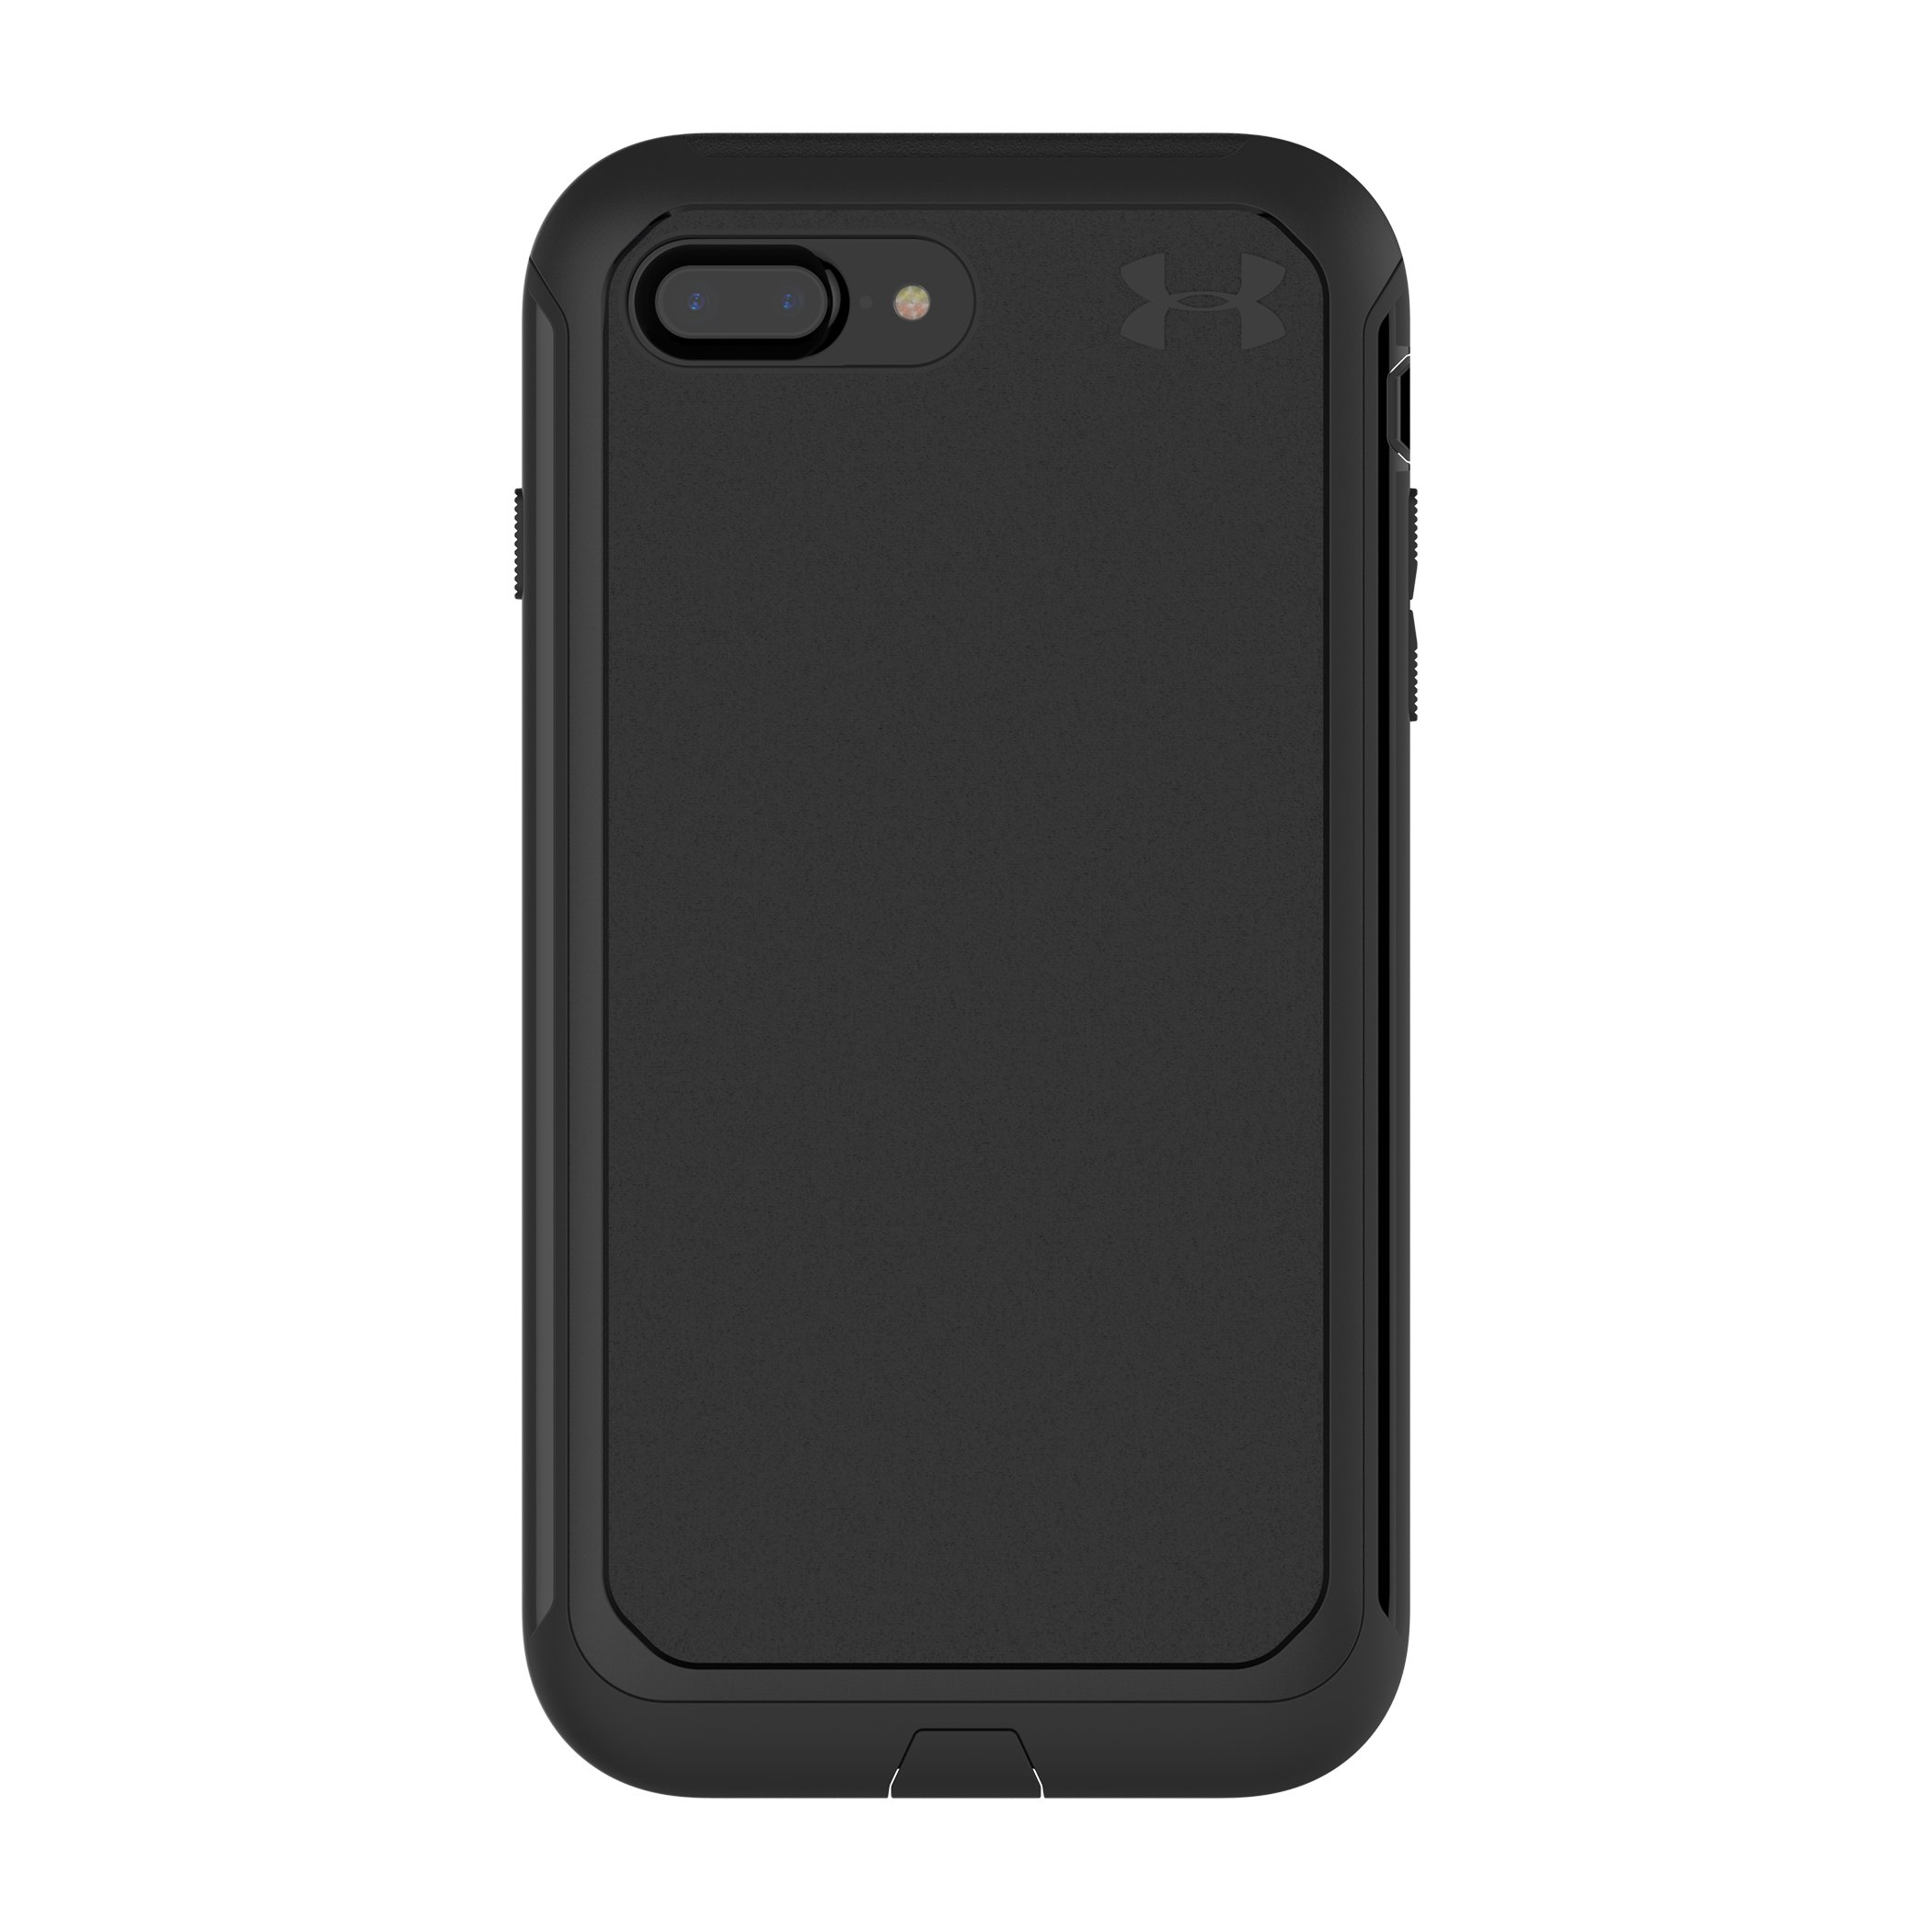 UA Protect Ultimate Case for iPhone 8 Plus/7 Plus/6 Plus/6s Plus, Black ,